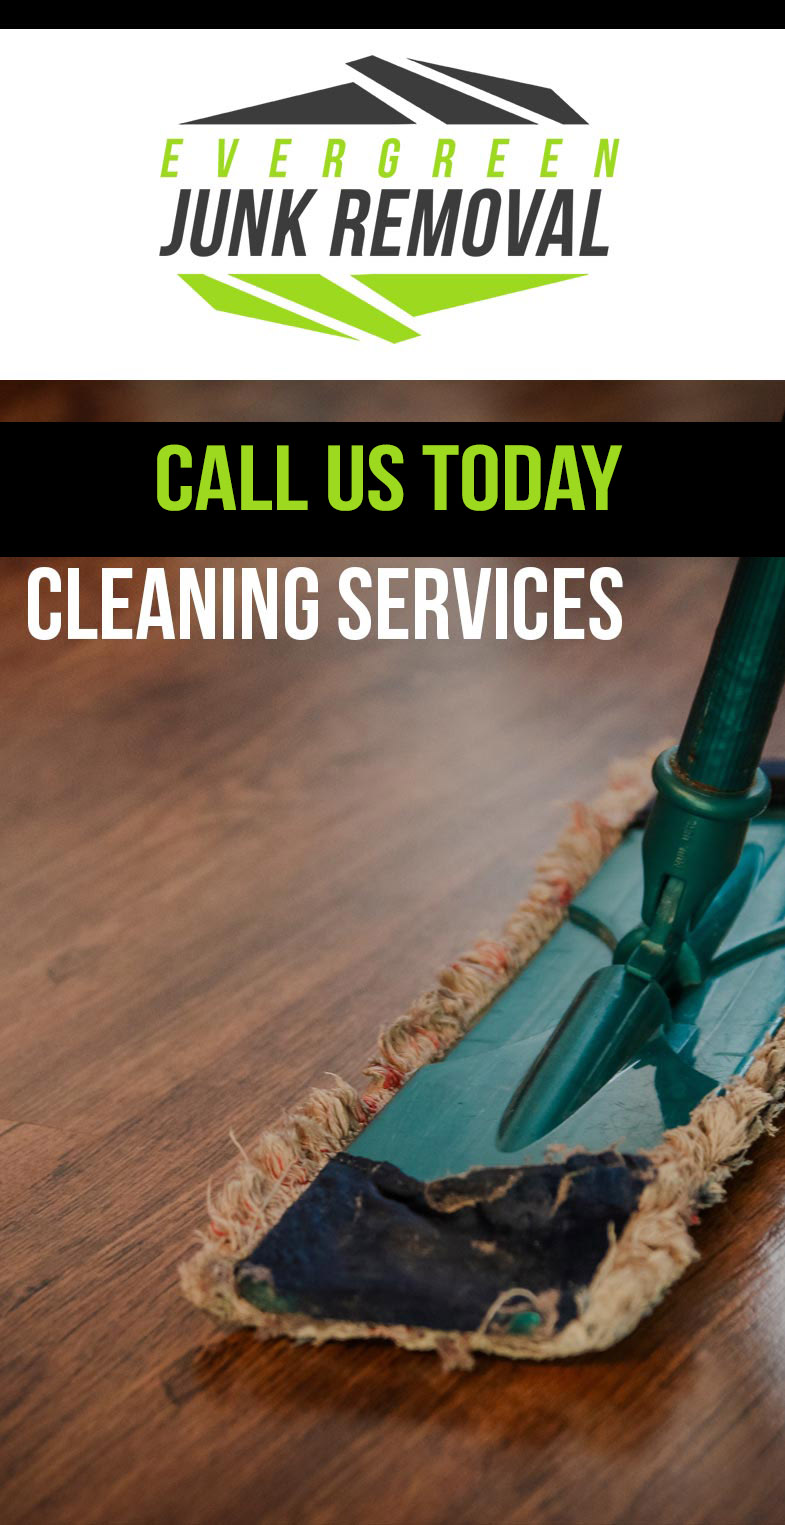 Glen Ridge Florida Maid Services